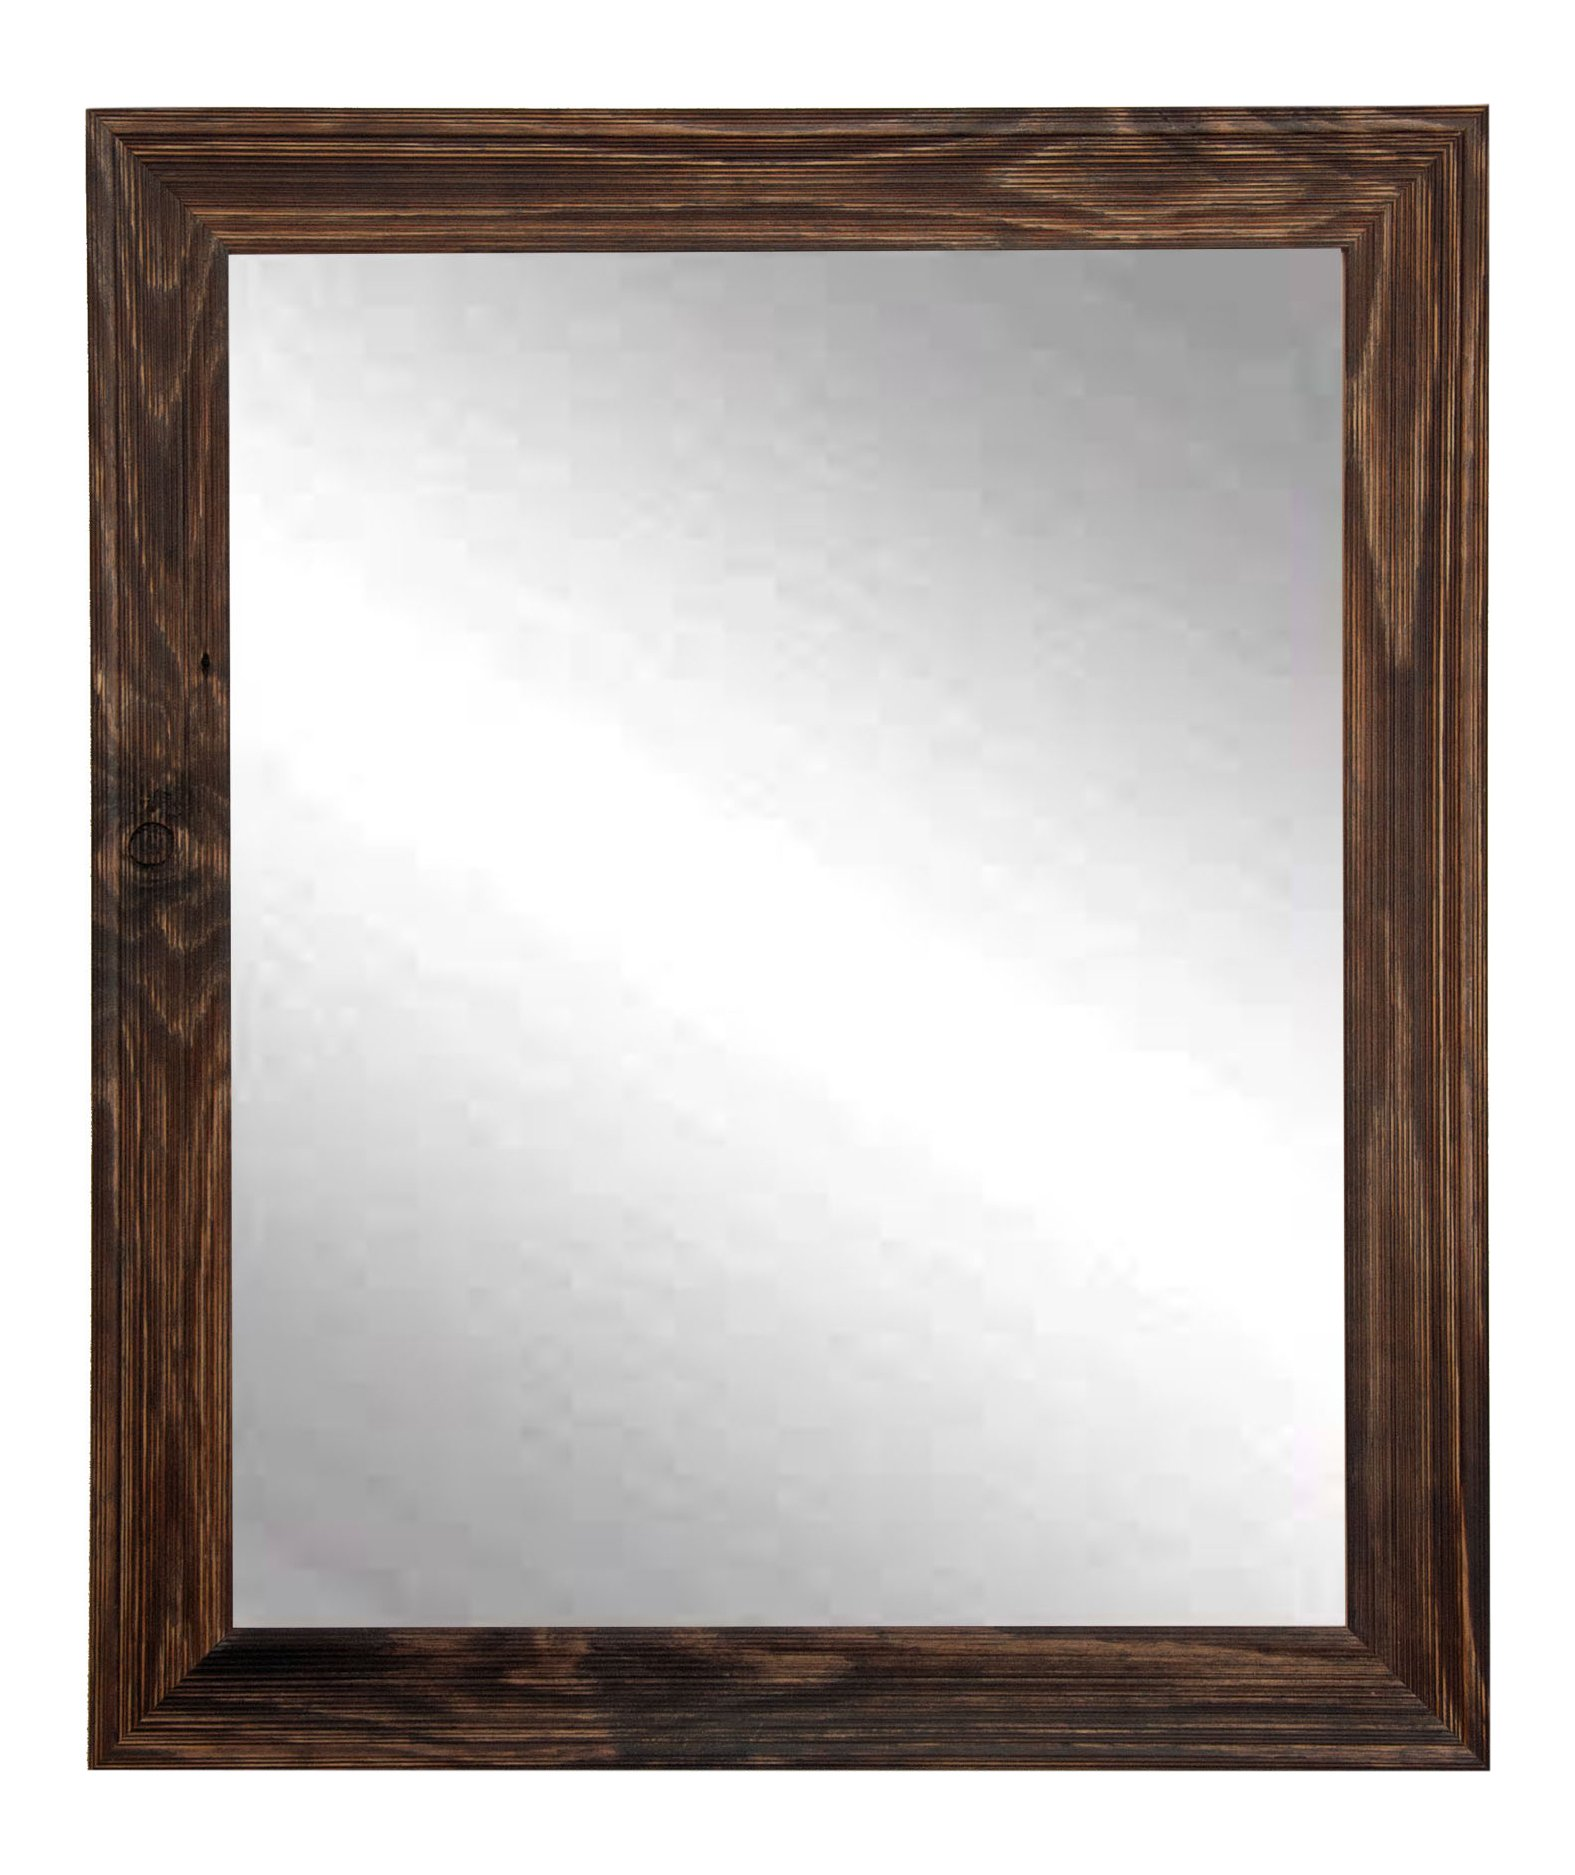 BrandtWorks BM017M2 Rustic Espresso Wall Mirror, 35.5 x 31.5'', Brown